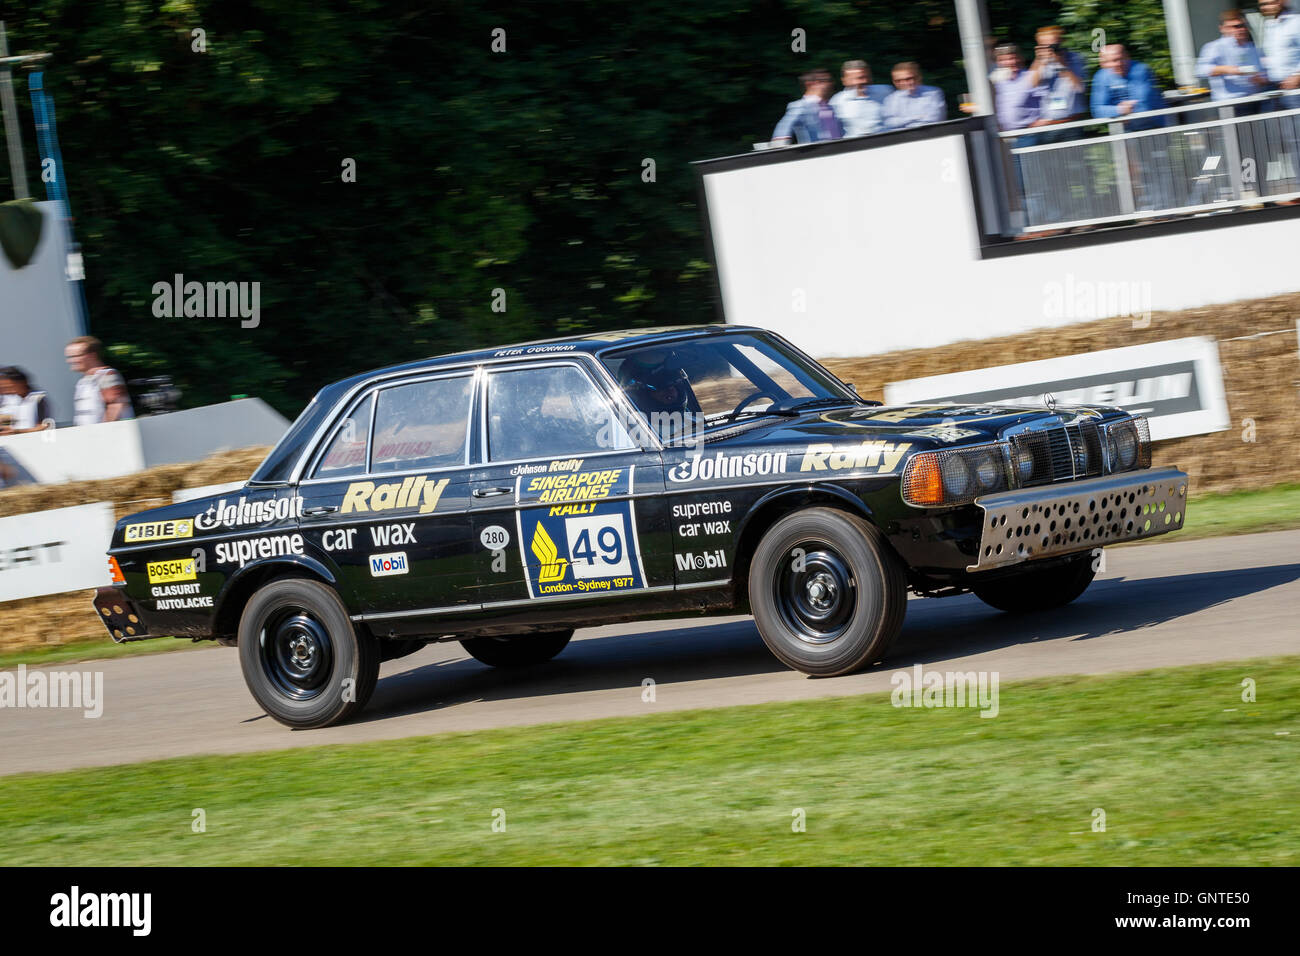 1977 Mercedes-Benz 280E rally car at the 2016 Goodwood Festival of ...